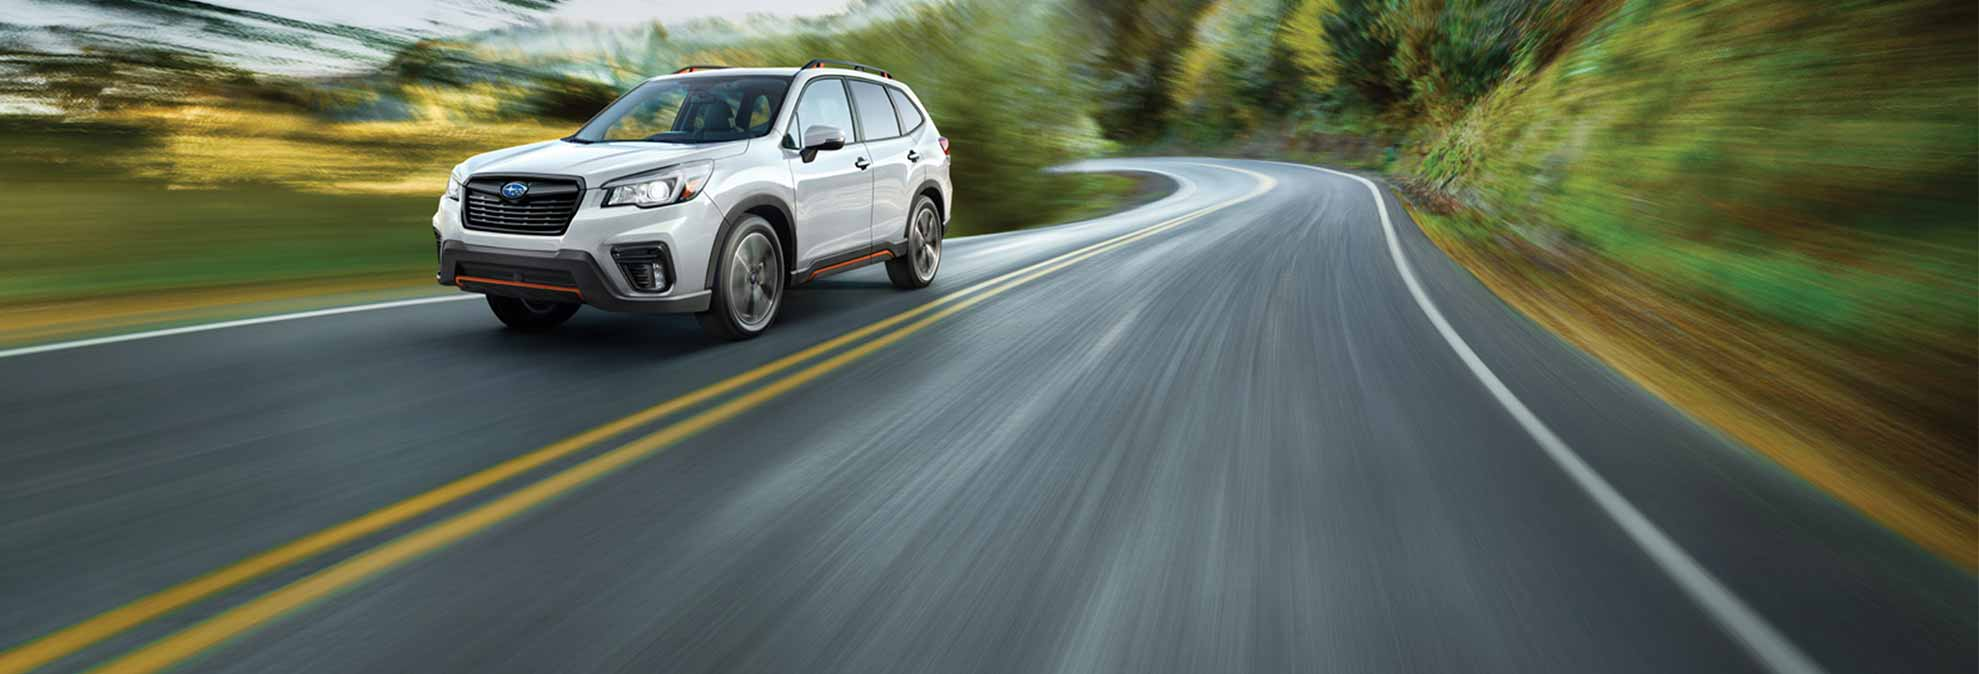 Best SUV Buying Guide - Consumer Reports